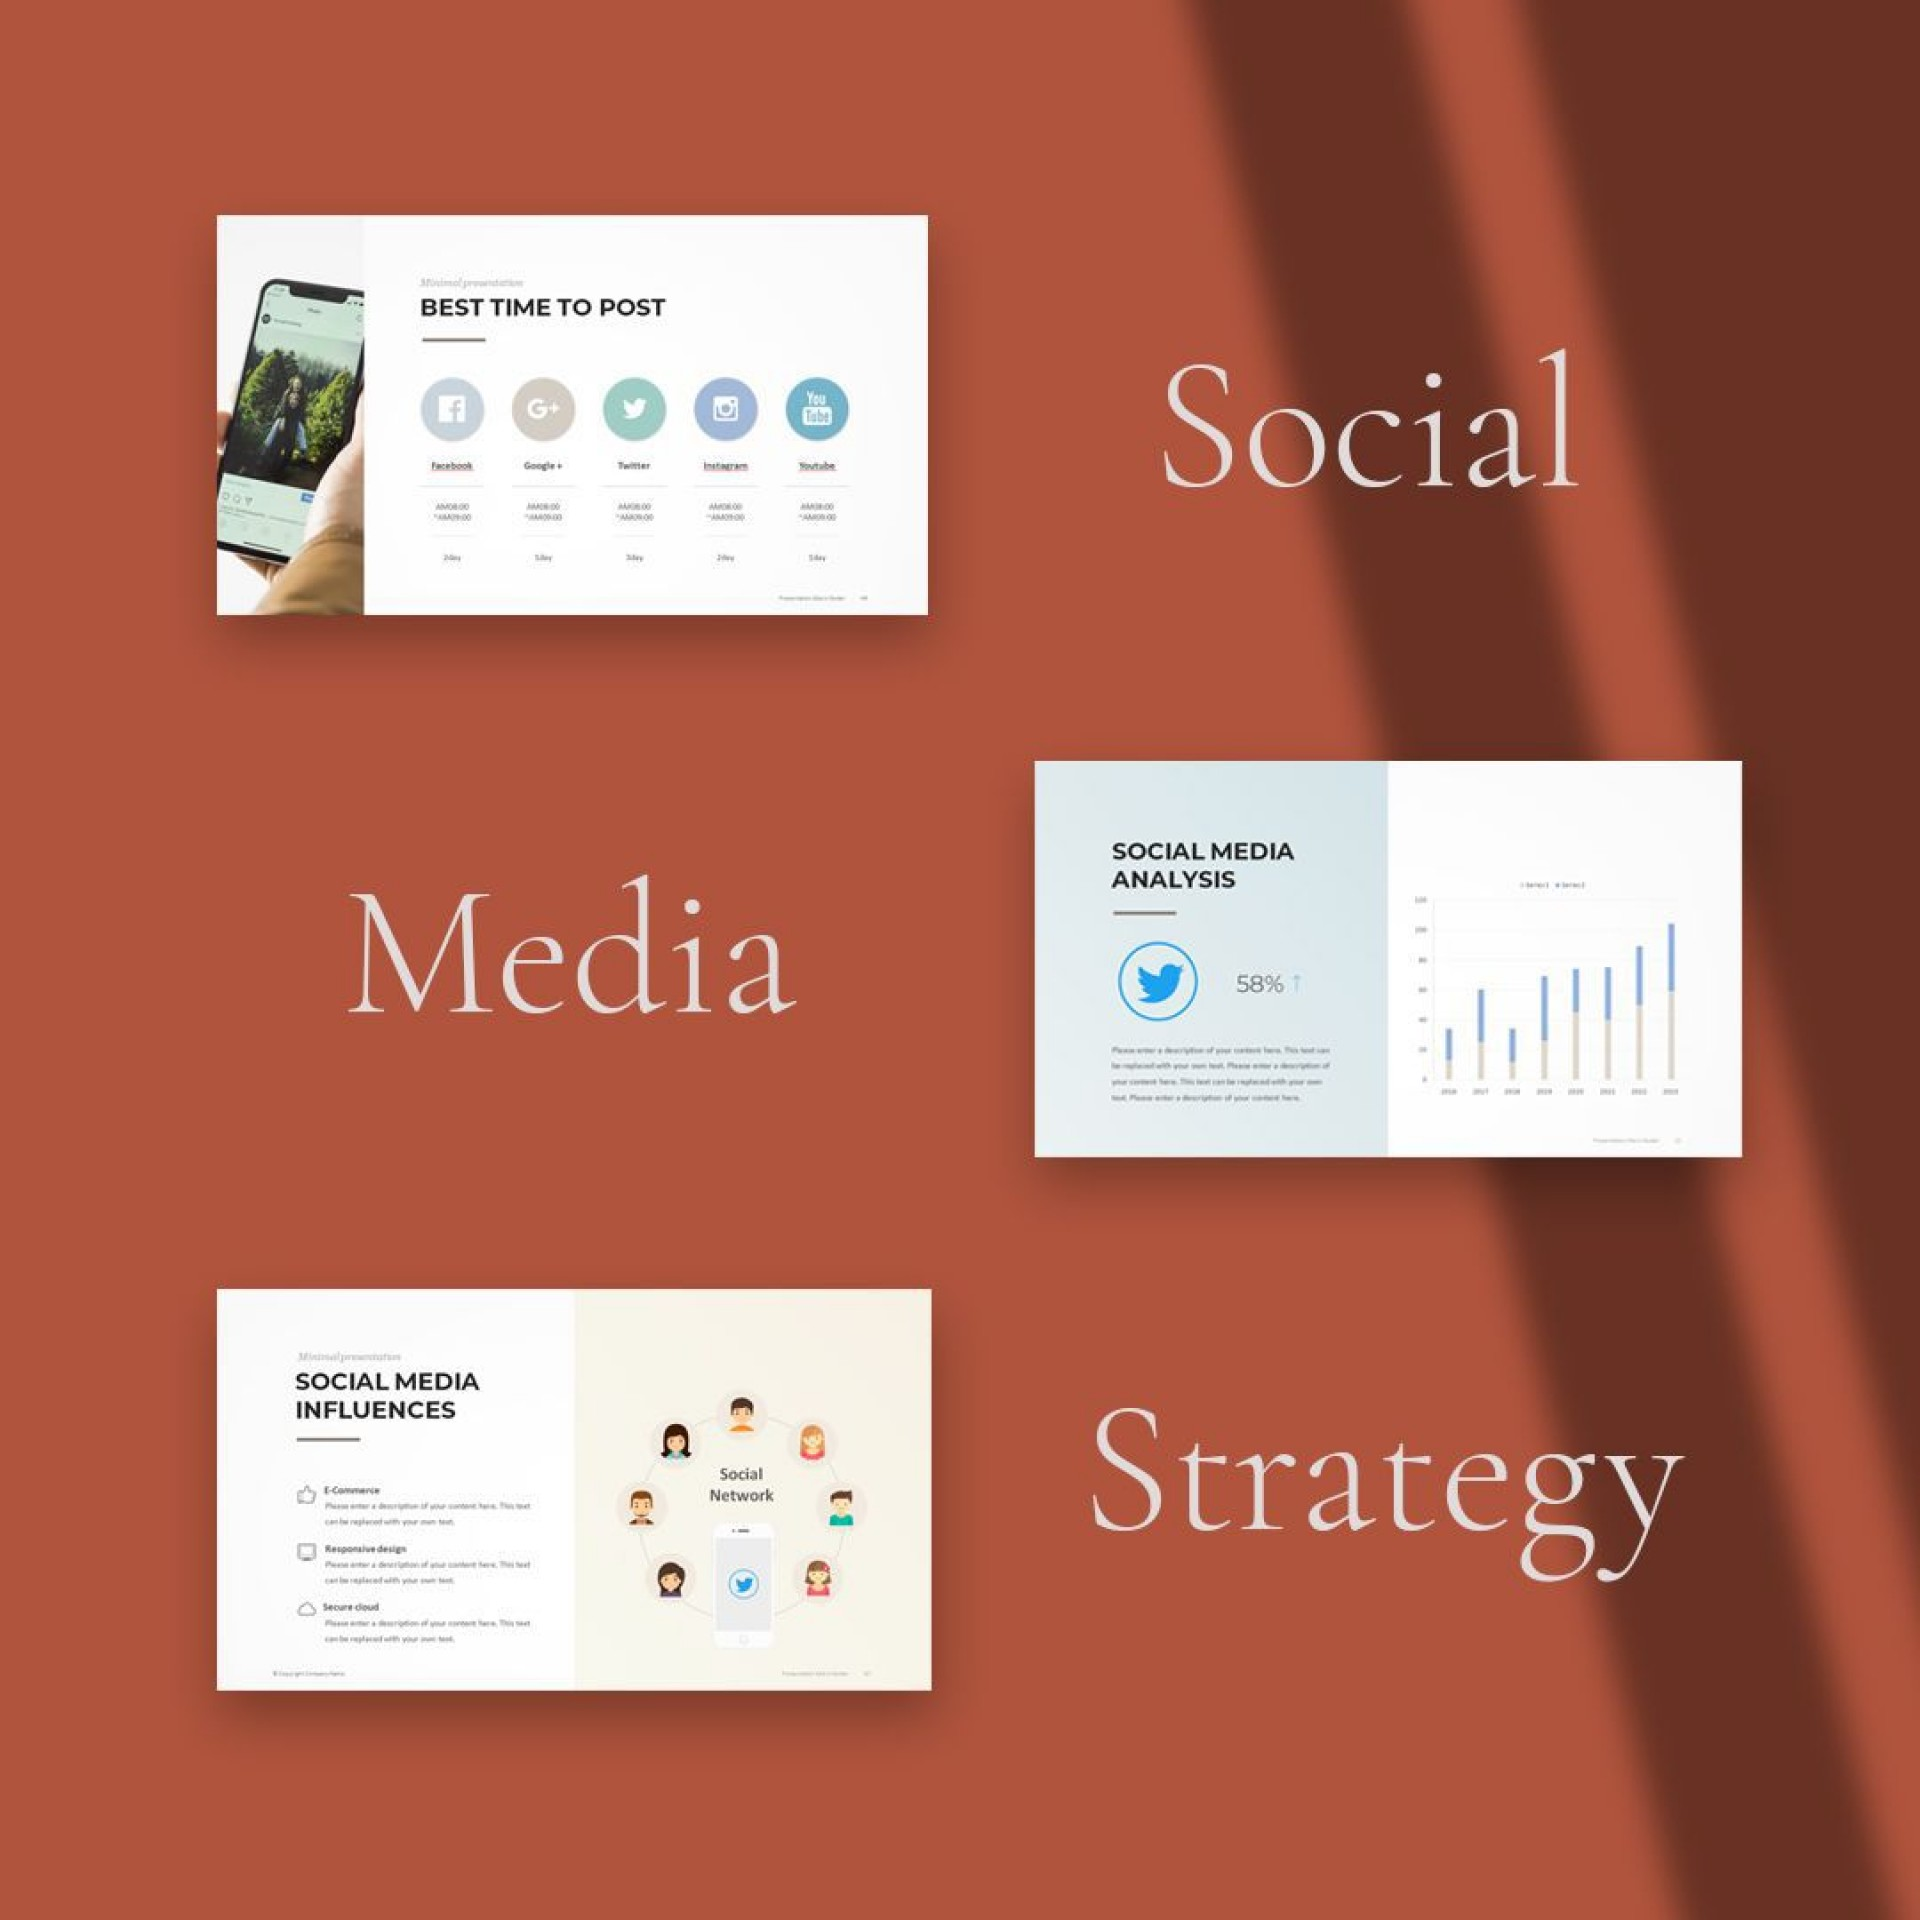 000 Simple Social Media Strategy Powerpoint Template Concept  Marketing Plan Free1920